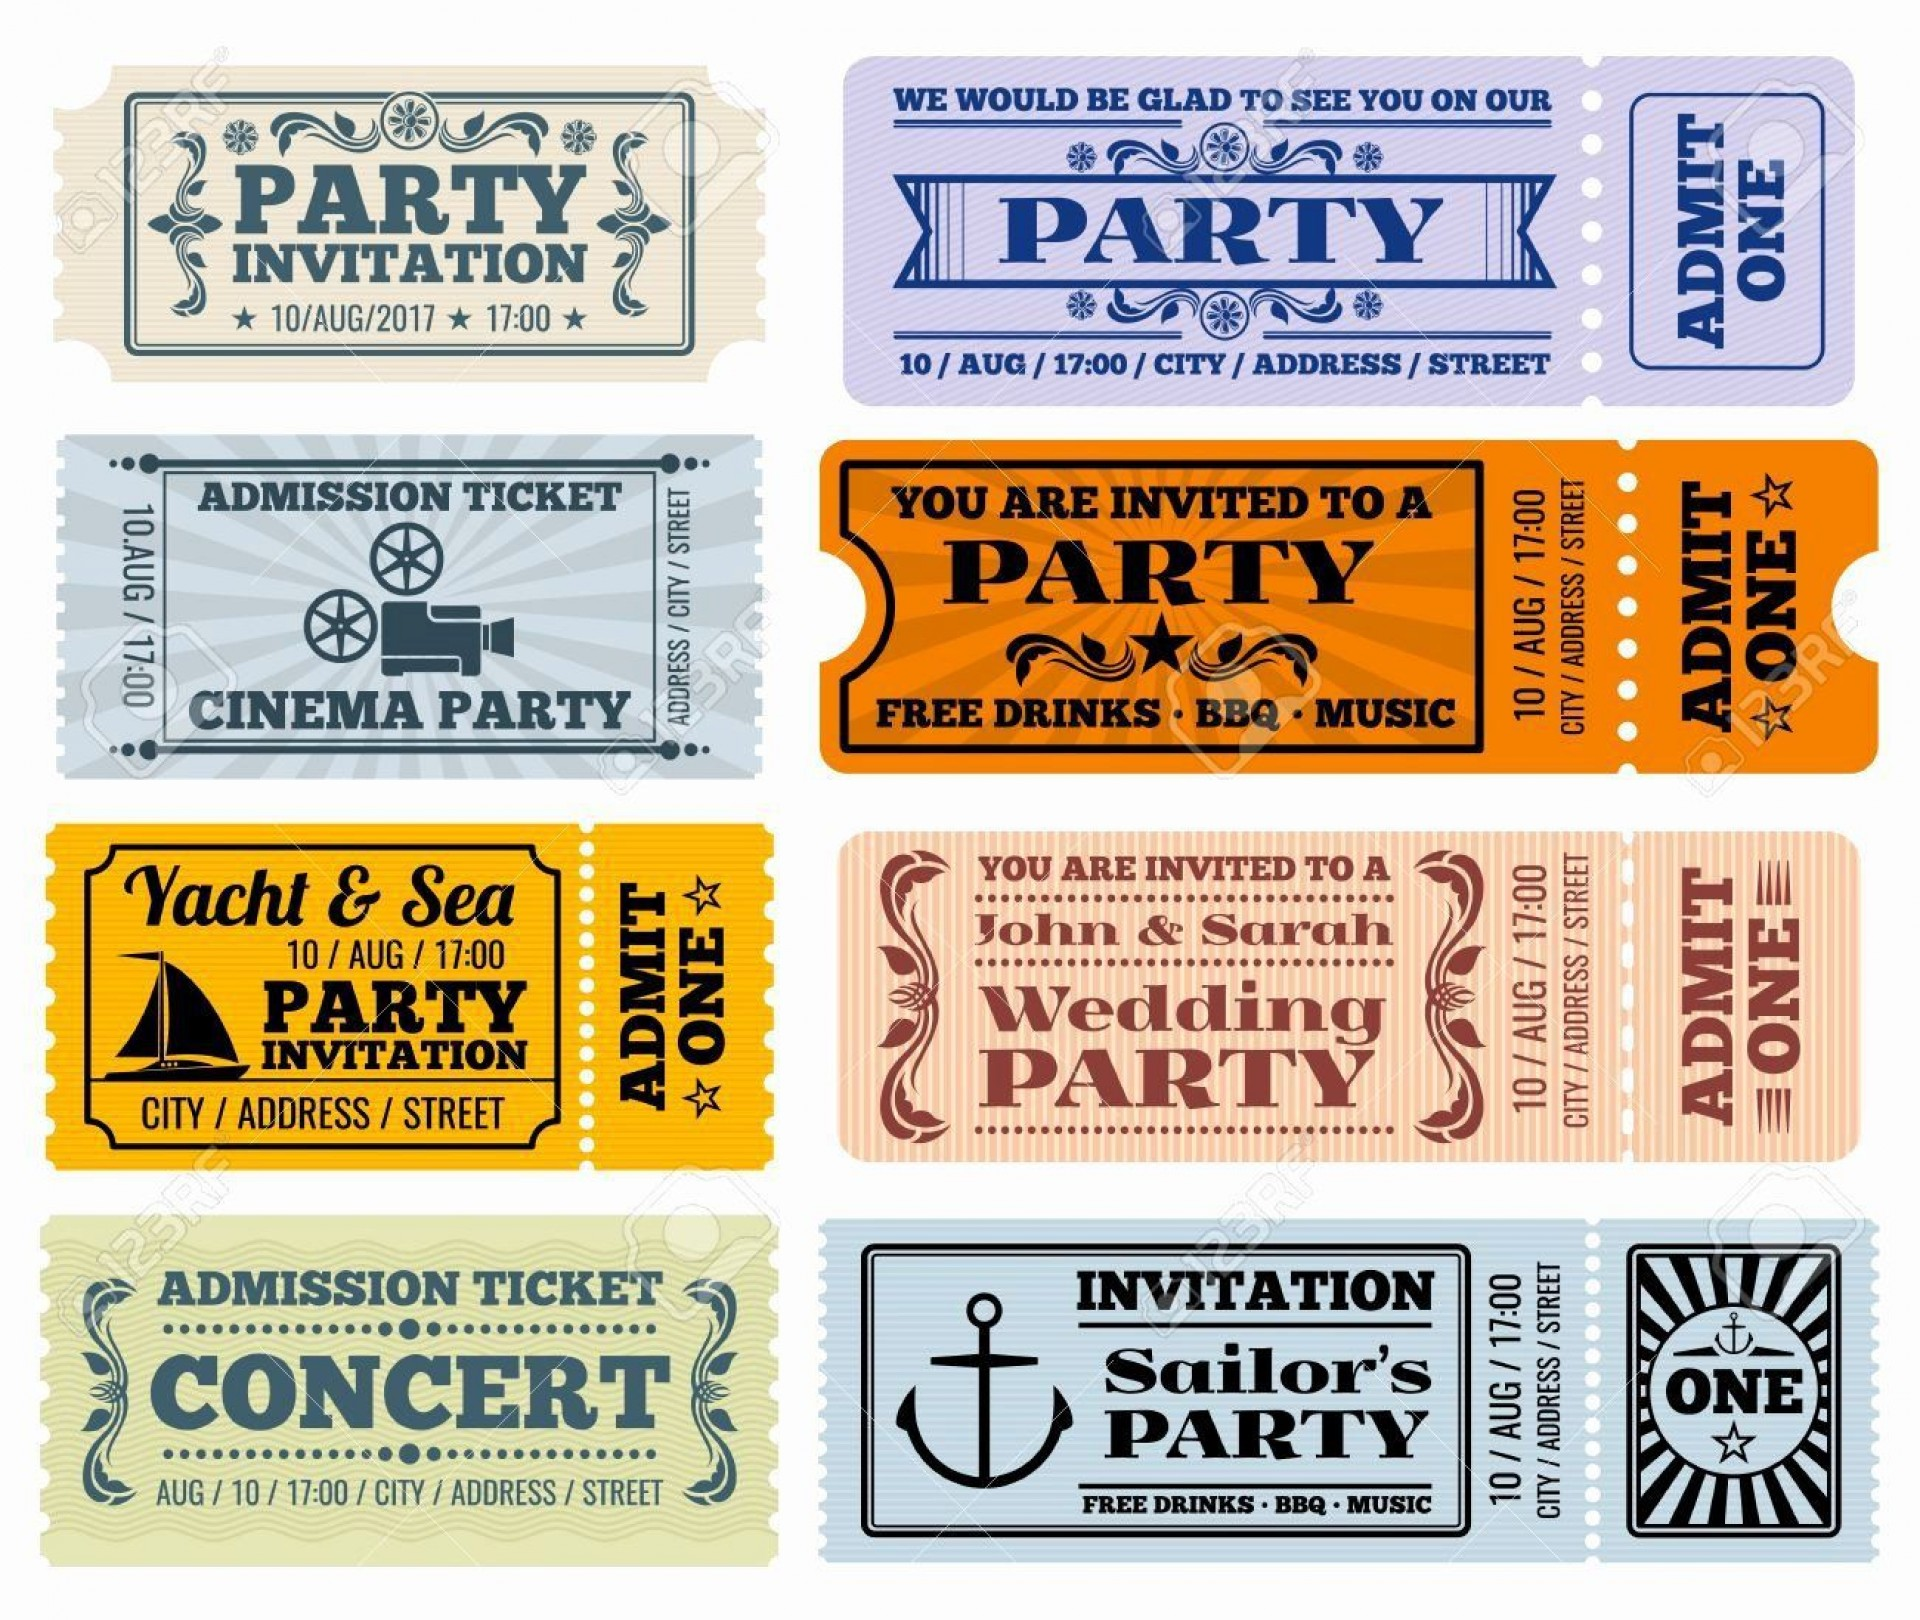 003 Wonderful Vintage Concert Ticket Template Free Download Design 1920